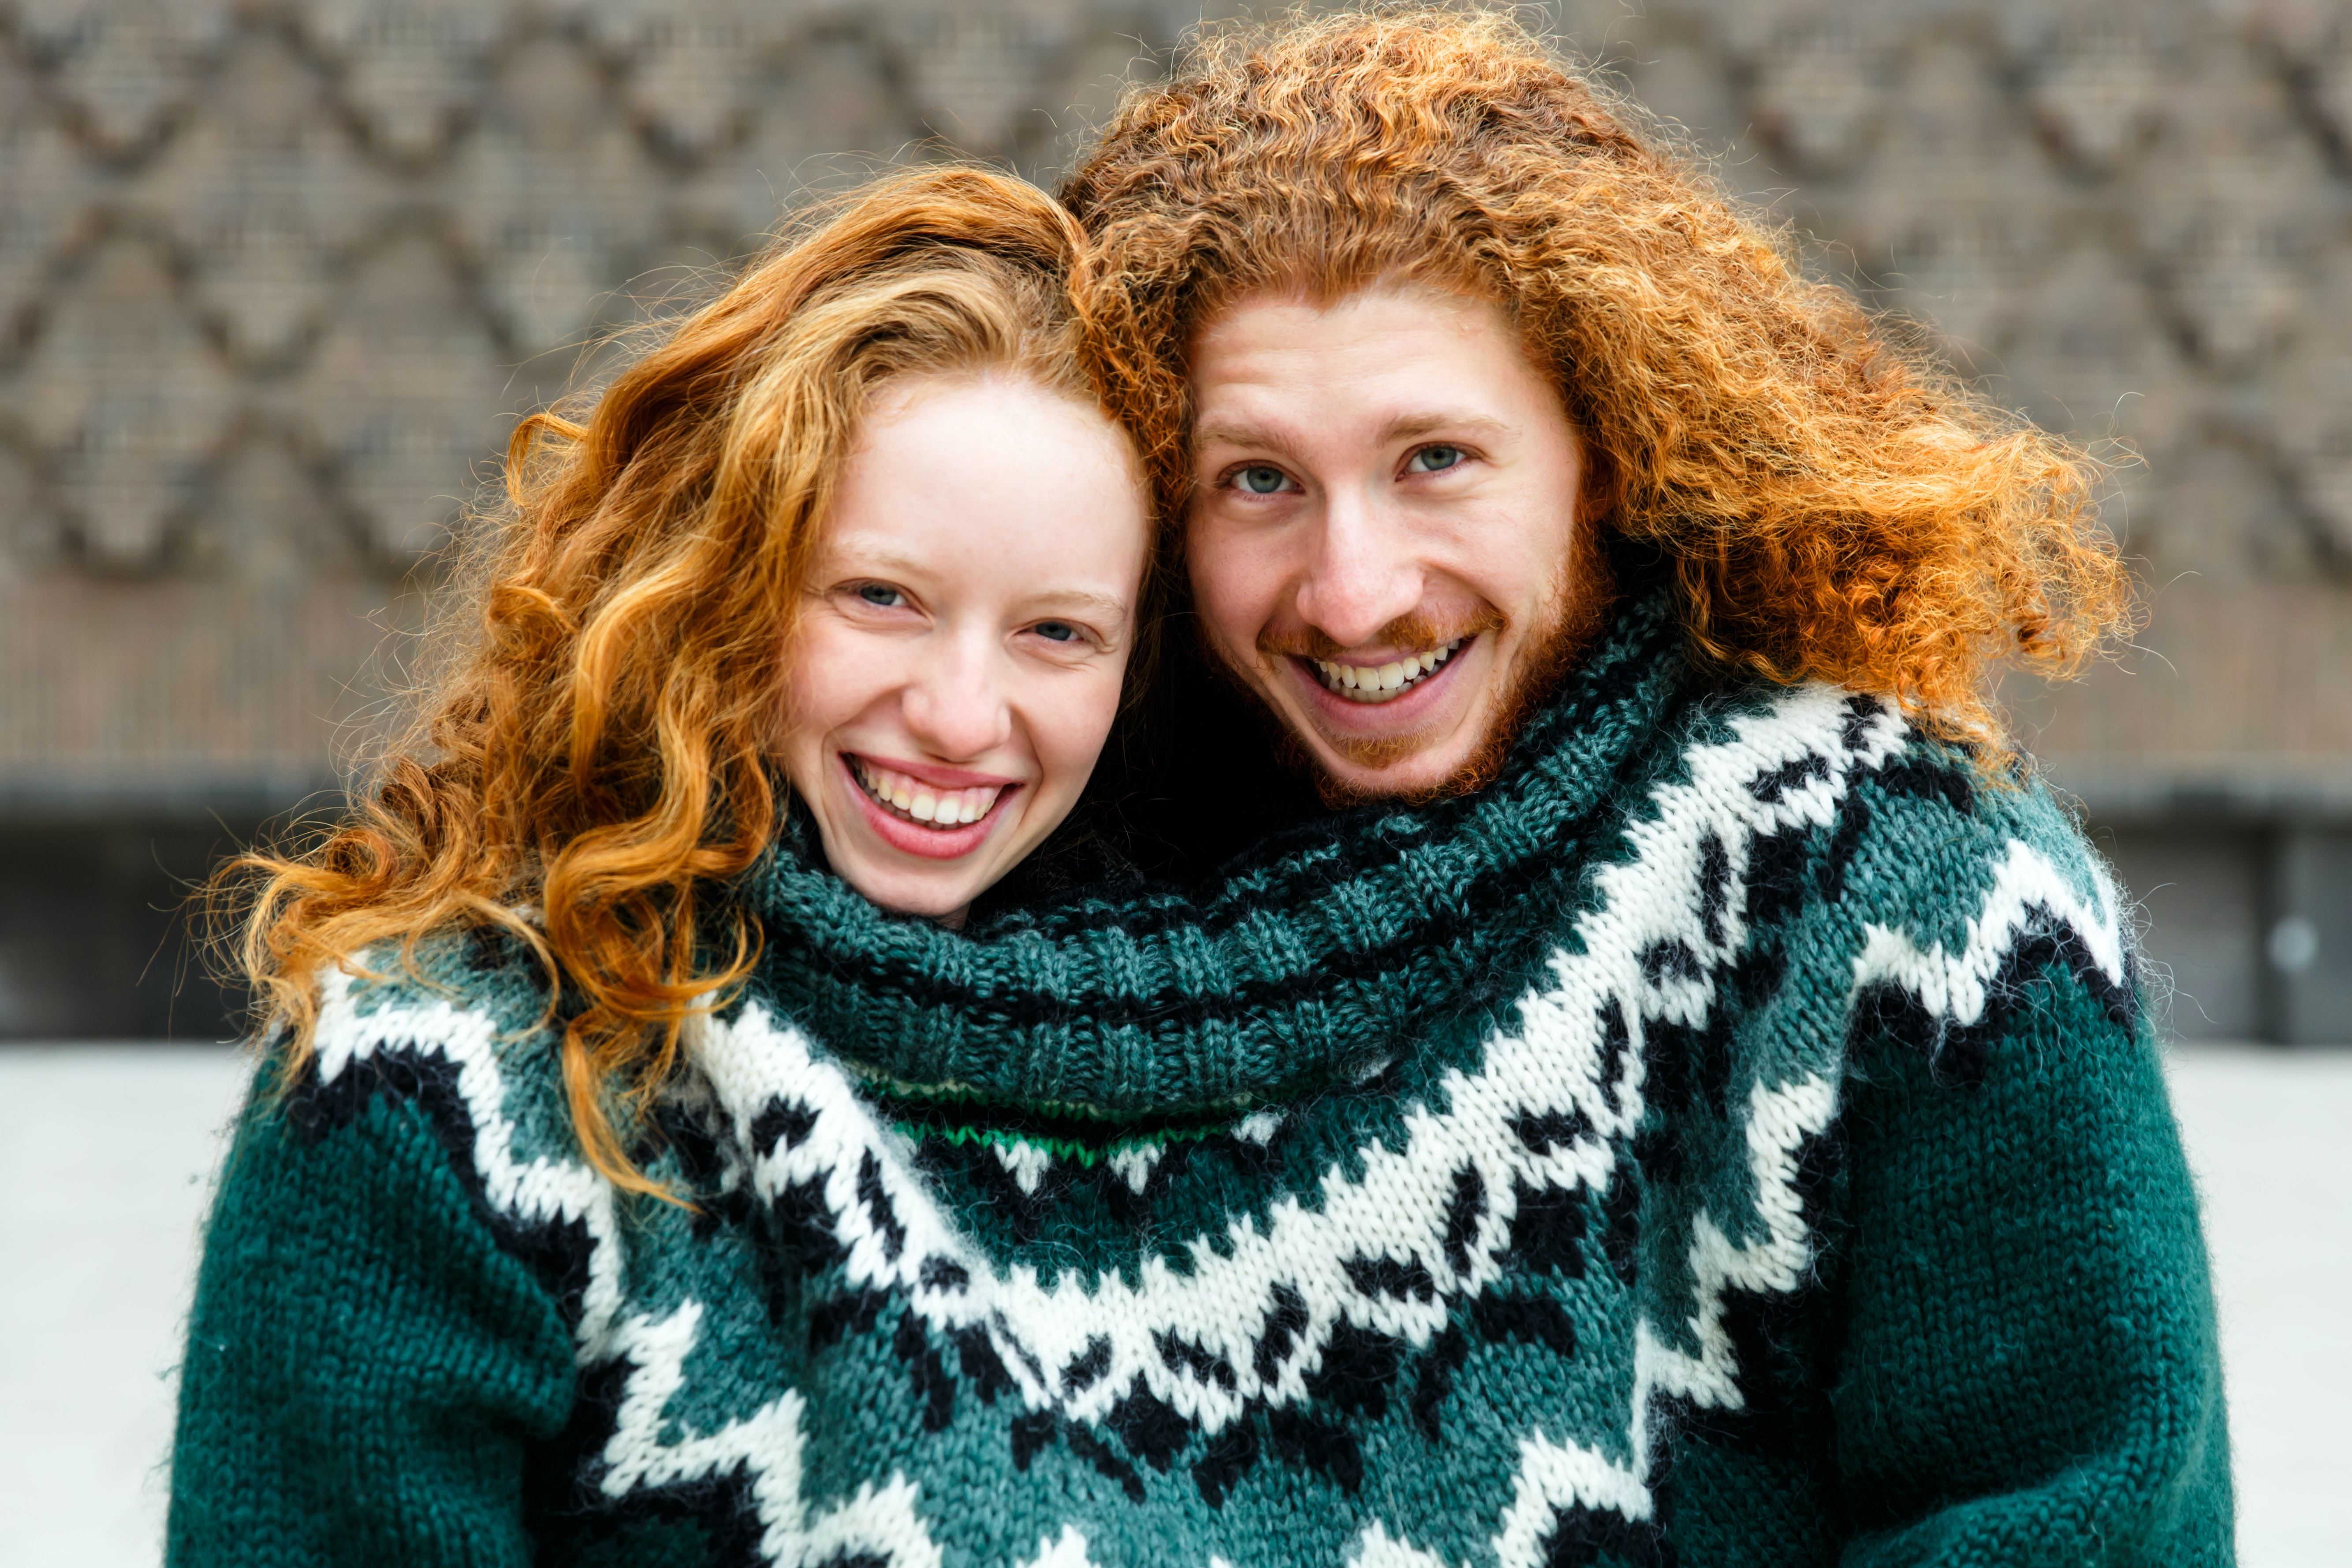 smiling woman and man wearing green knit sweater